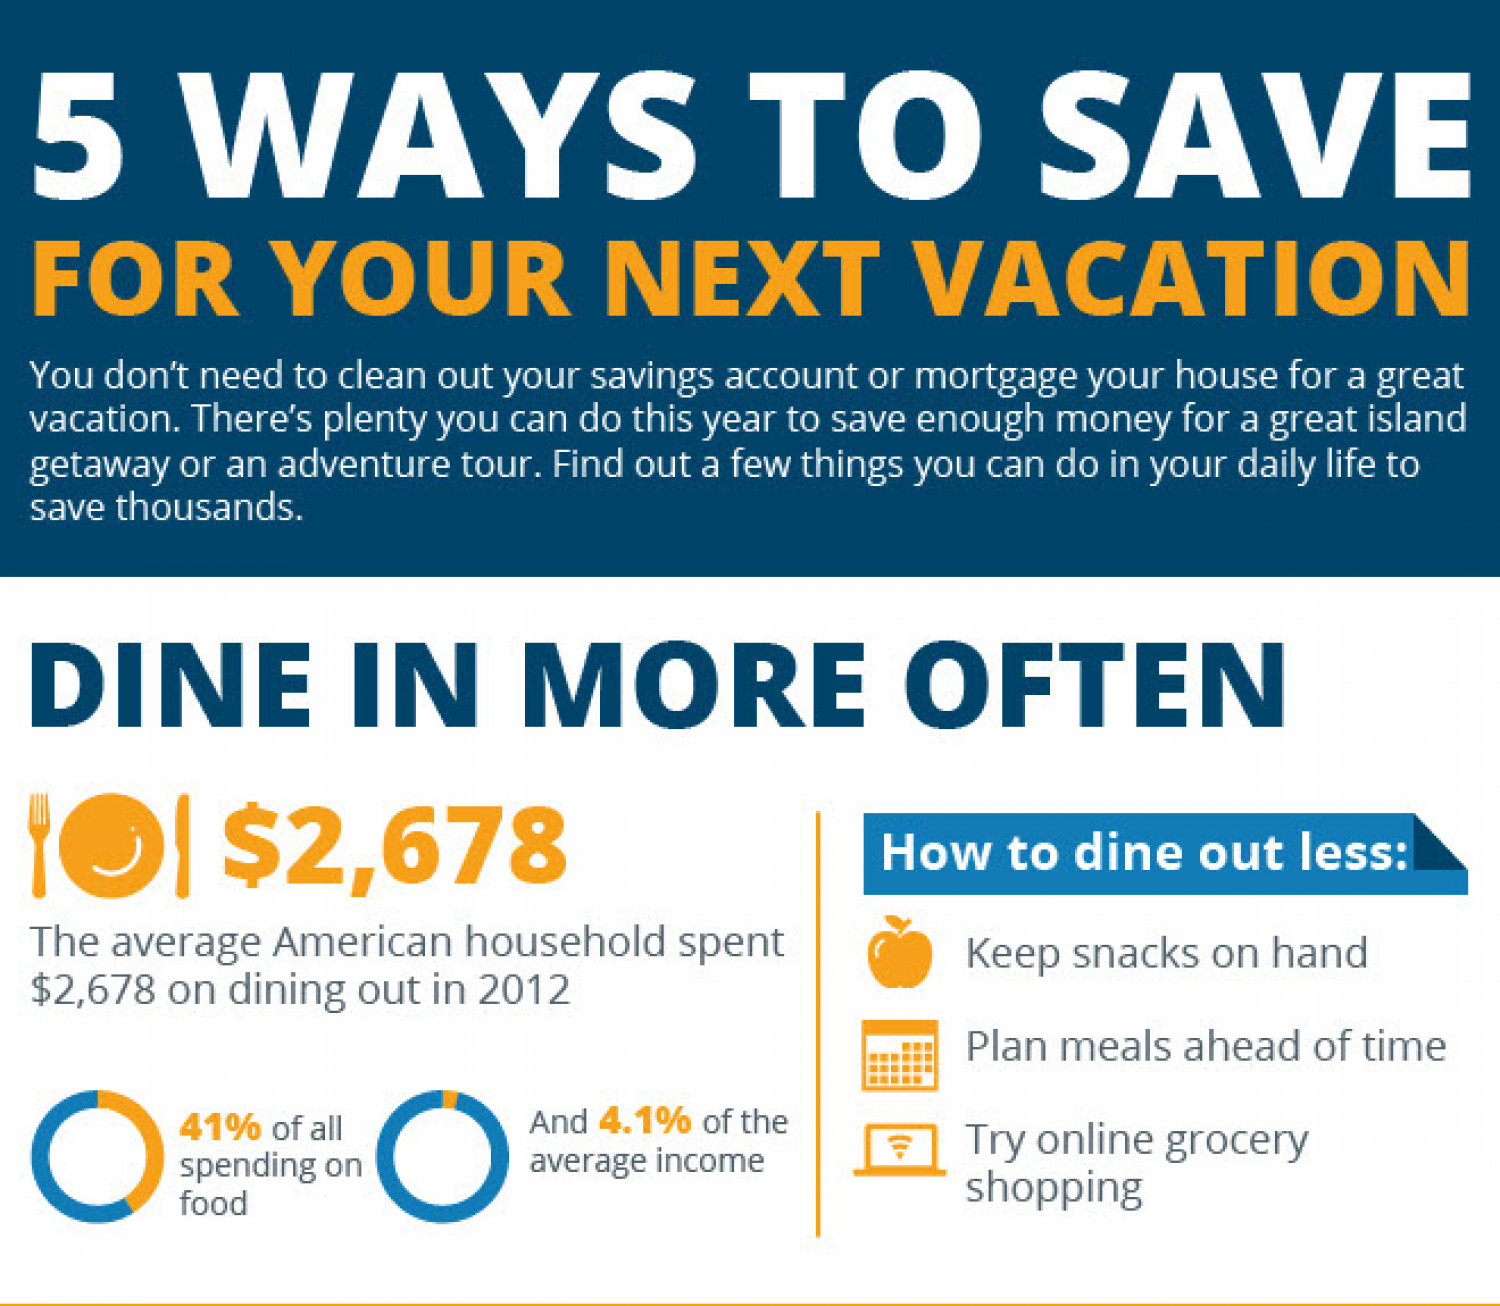 5 Ways To Save For Your Next Vacation Infographic